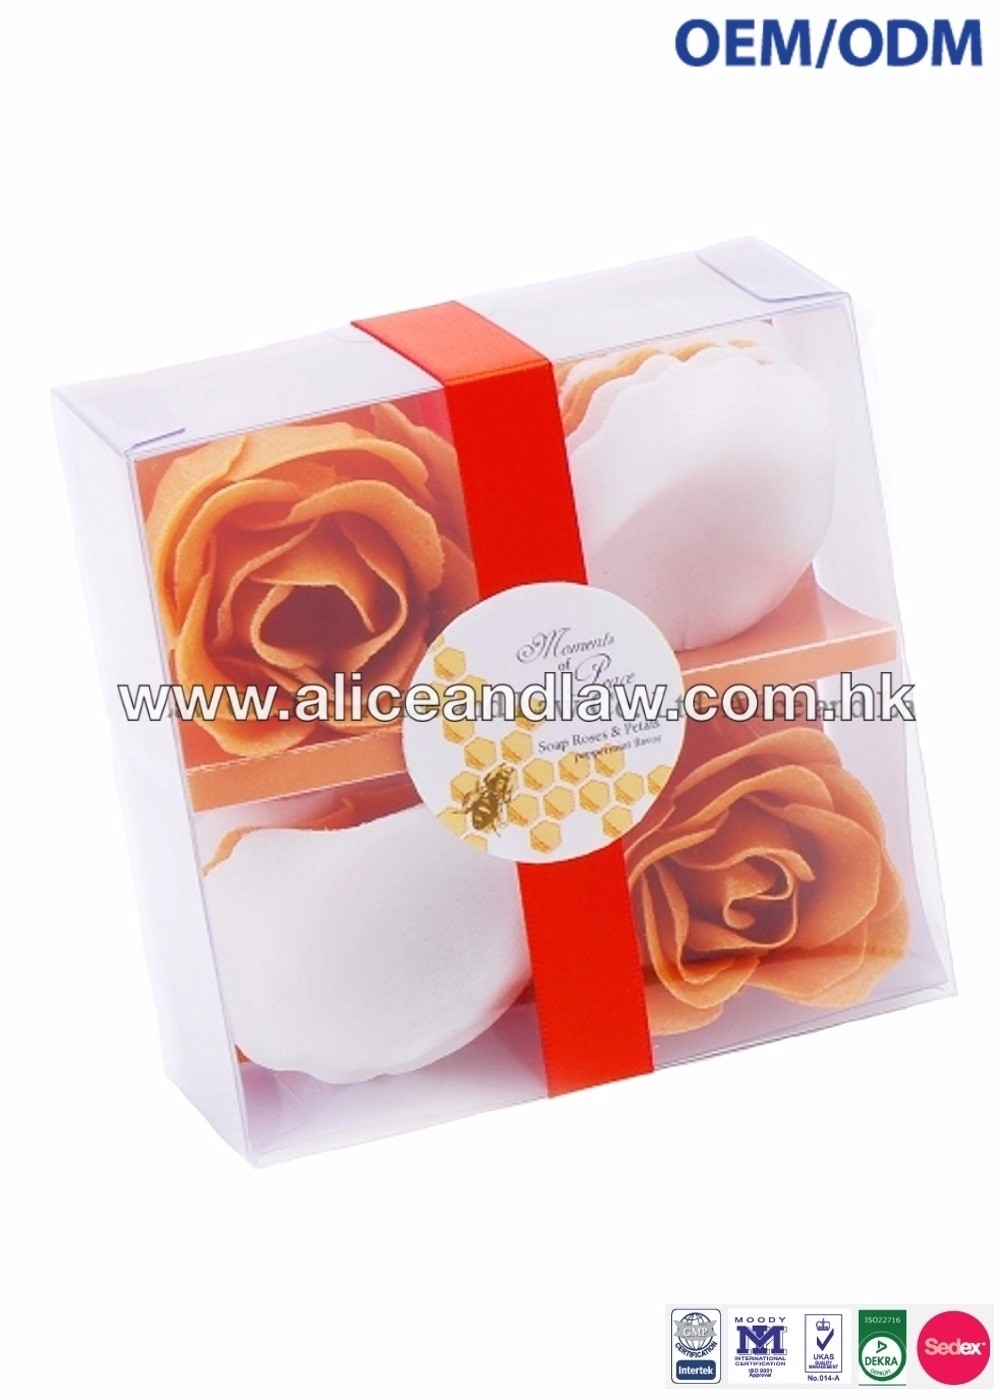 OEM/ODM Rose and Soap Petals Soap Flower in a Plastic Clear Box Bath Soap Flower